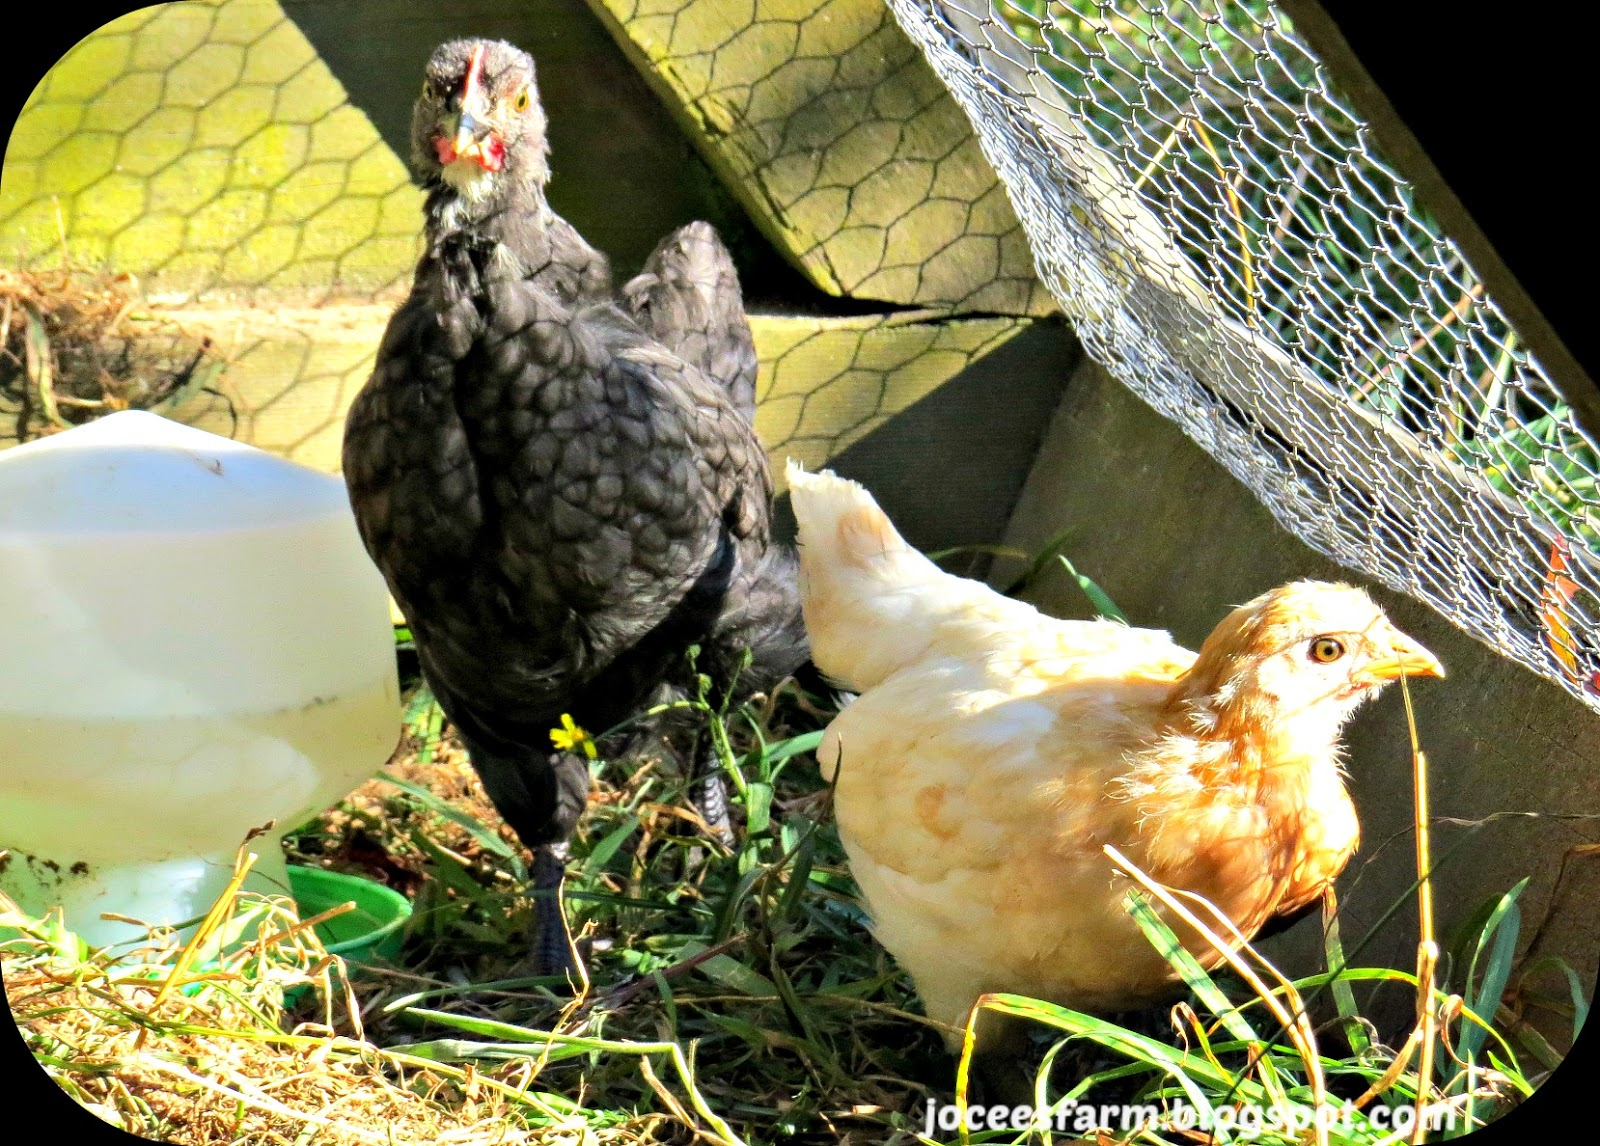 Chicks  @  joceesfarm.blogspot.com